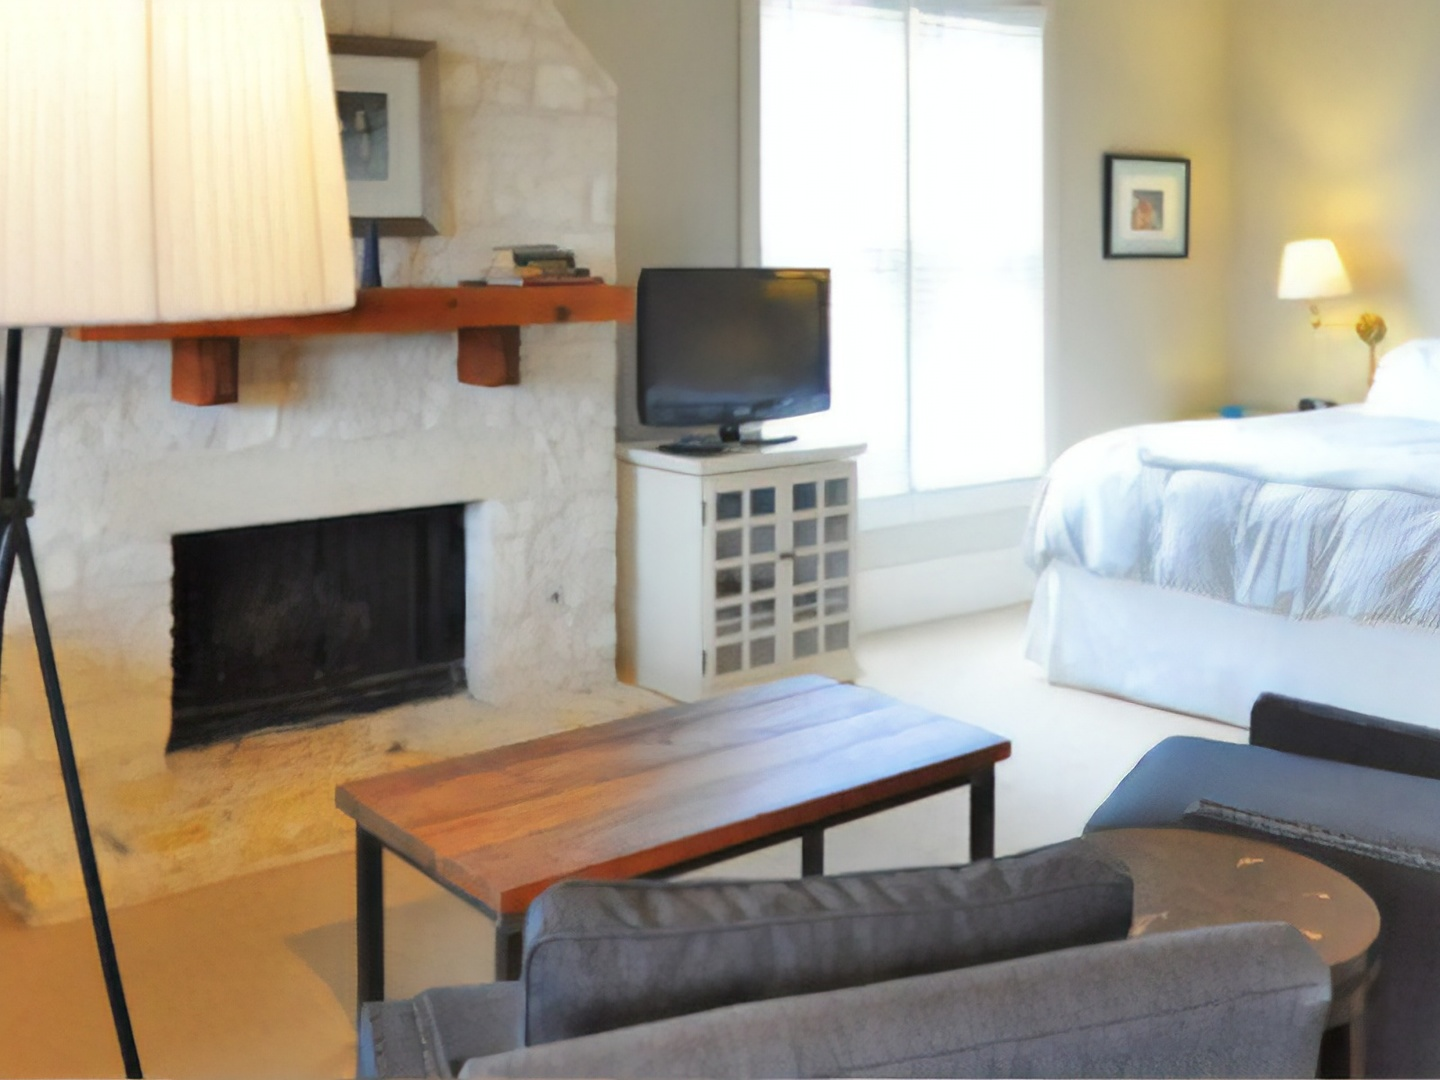 A living room filled with furniture and a fireplace at Sage Hill Inn & Spa.